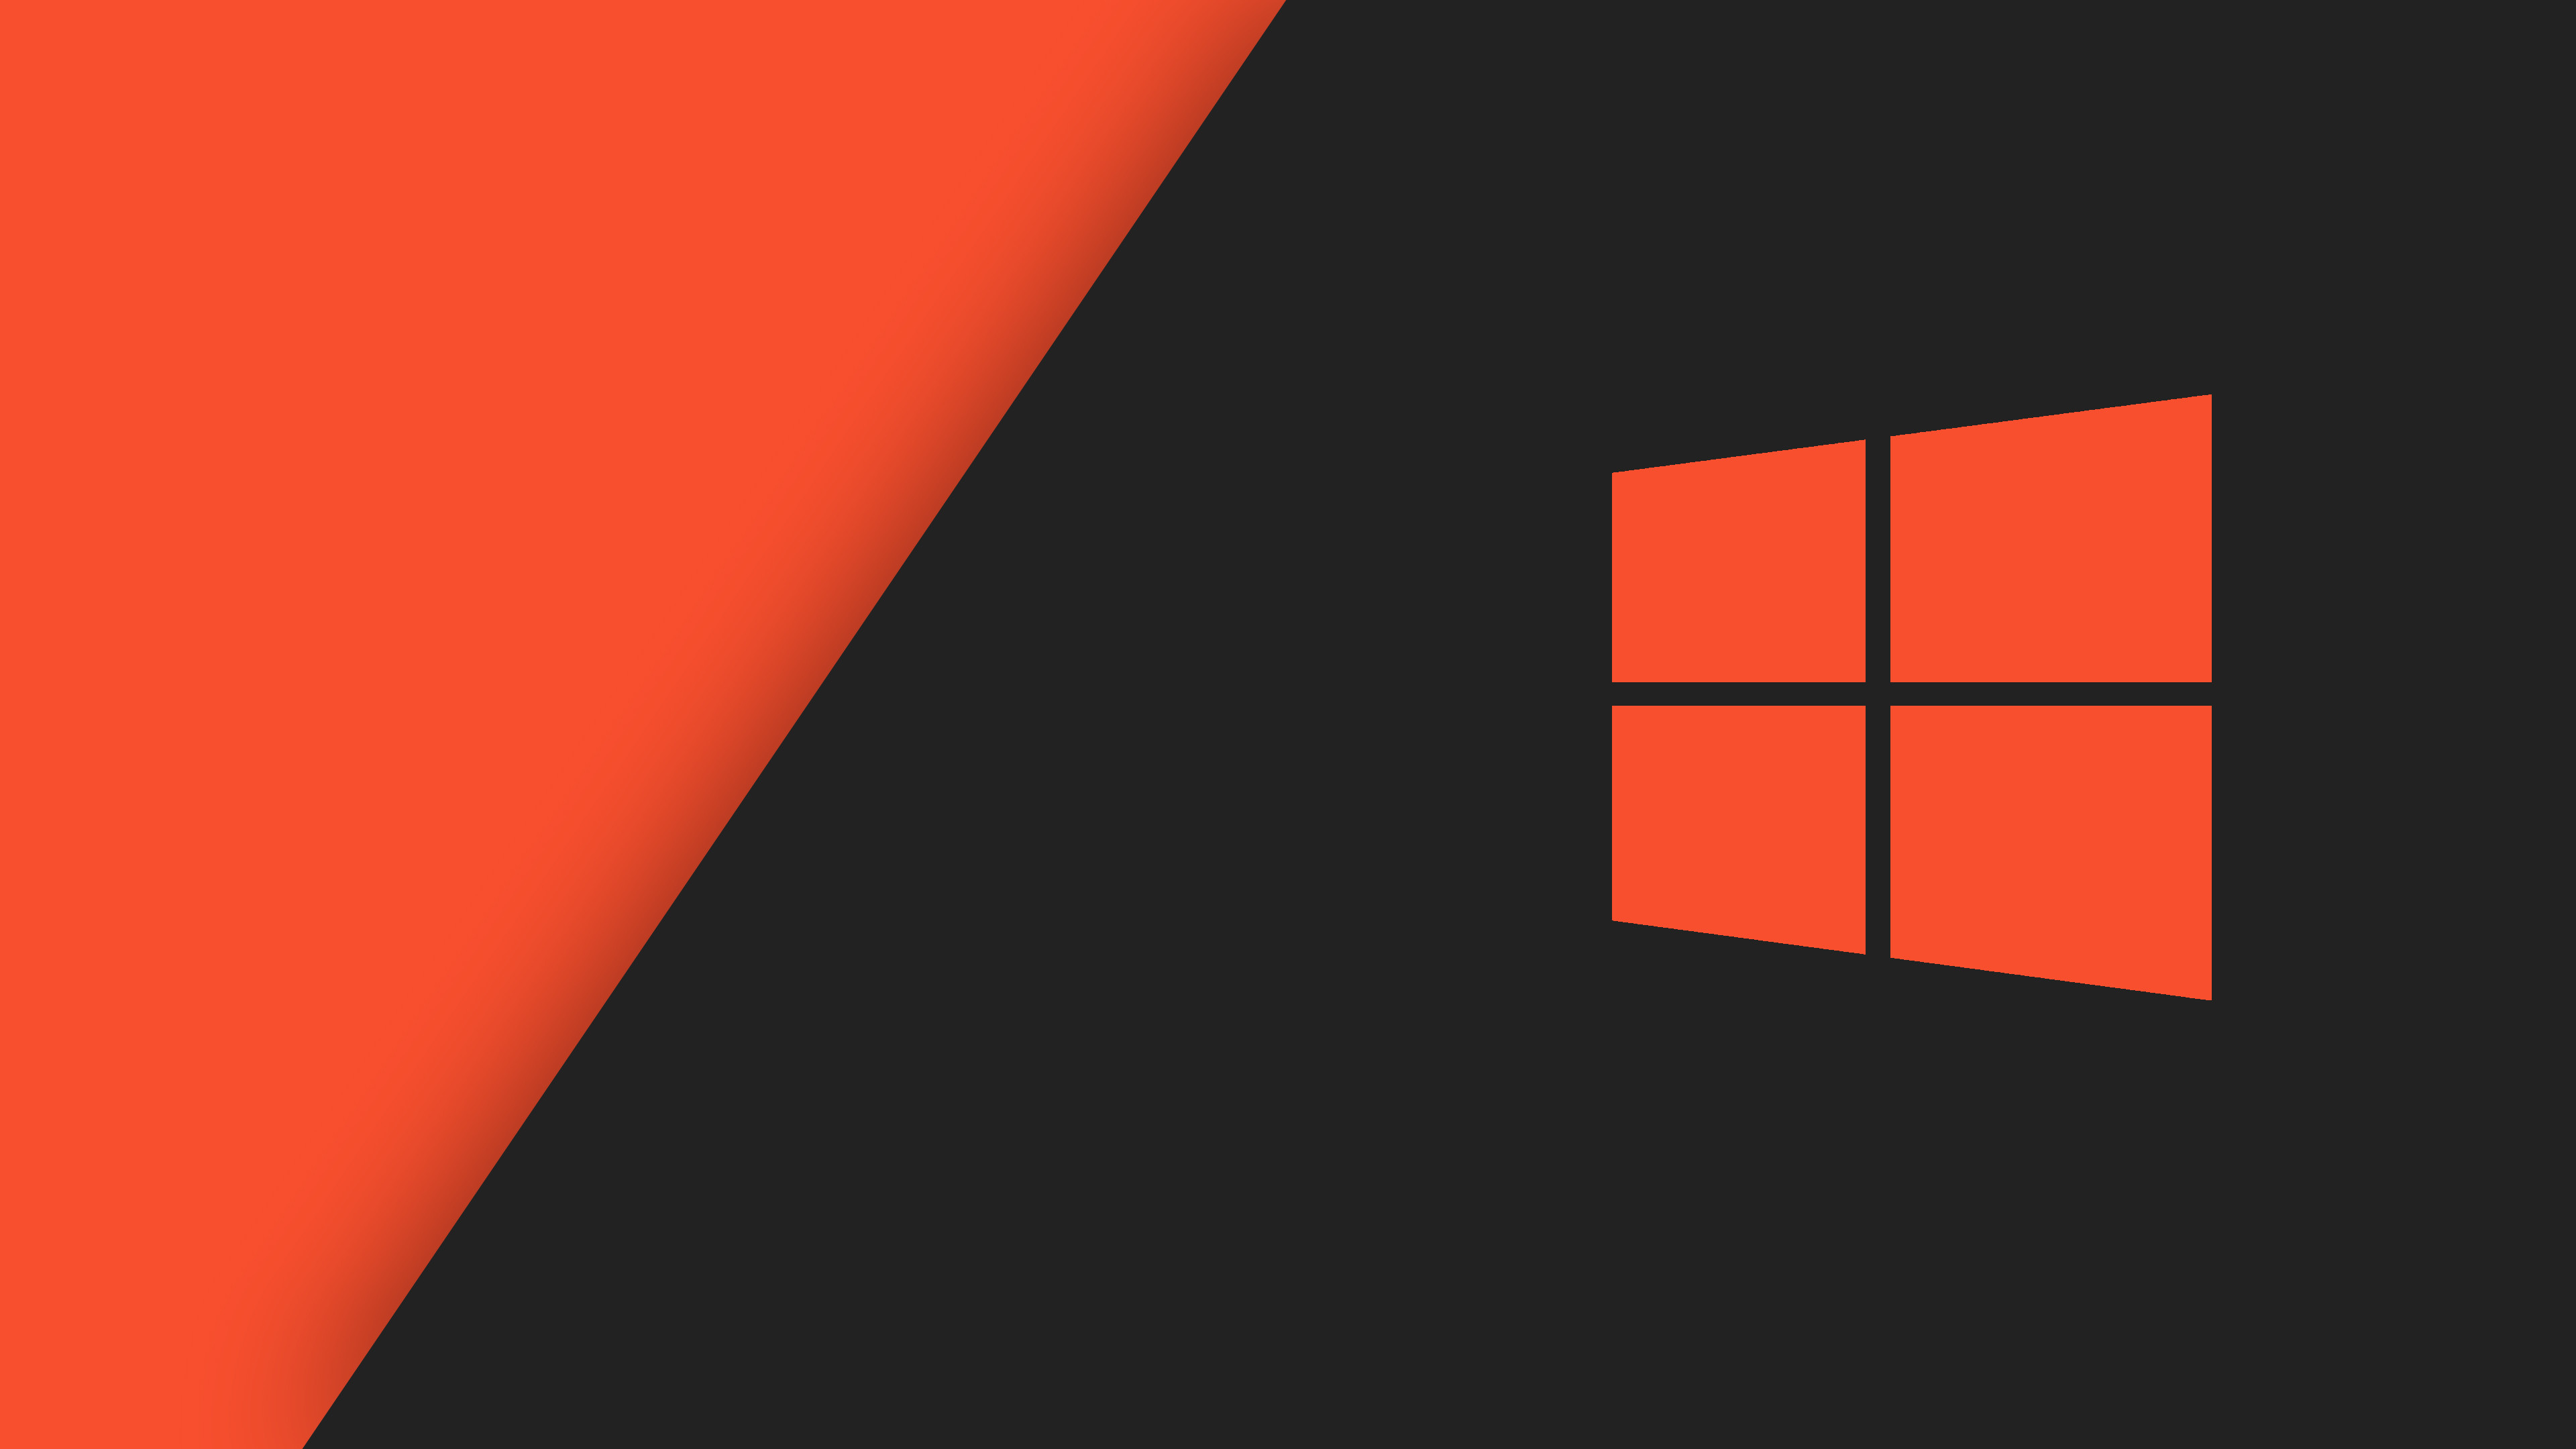 Windows 10 HD Wallpapers (74+ images)